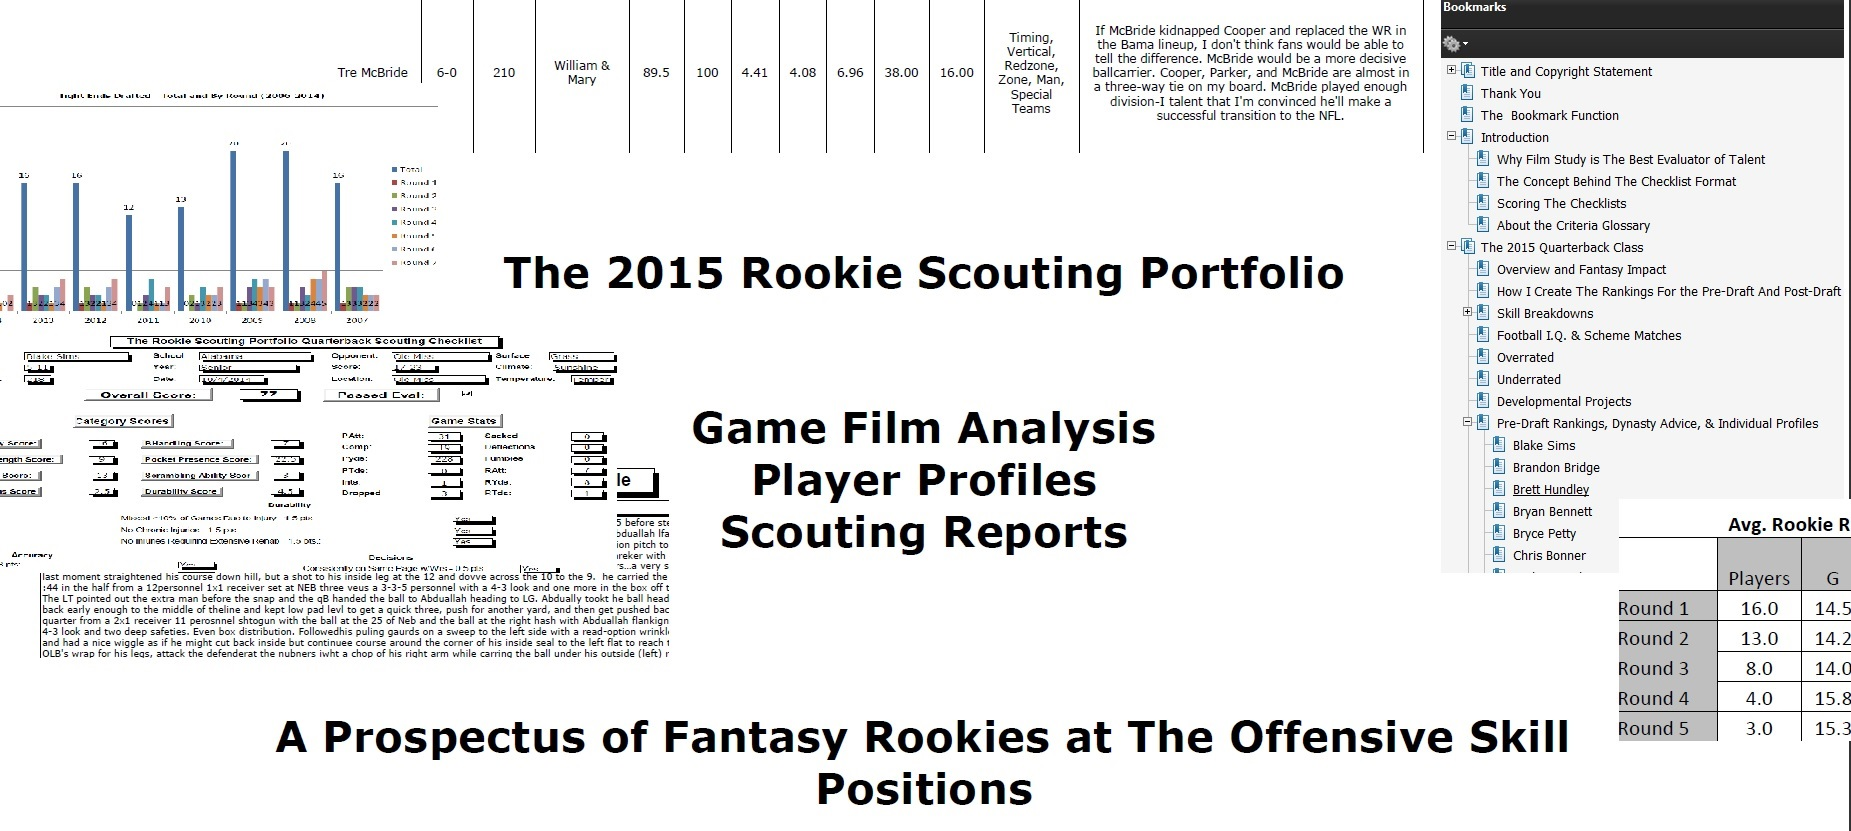 2015 Rookie Scouting Portfolio Now Available